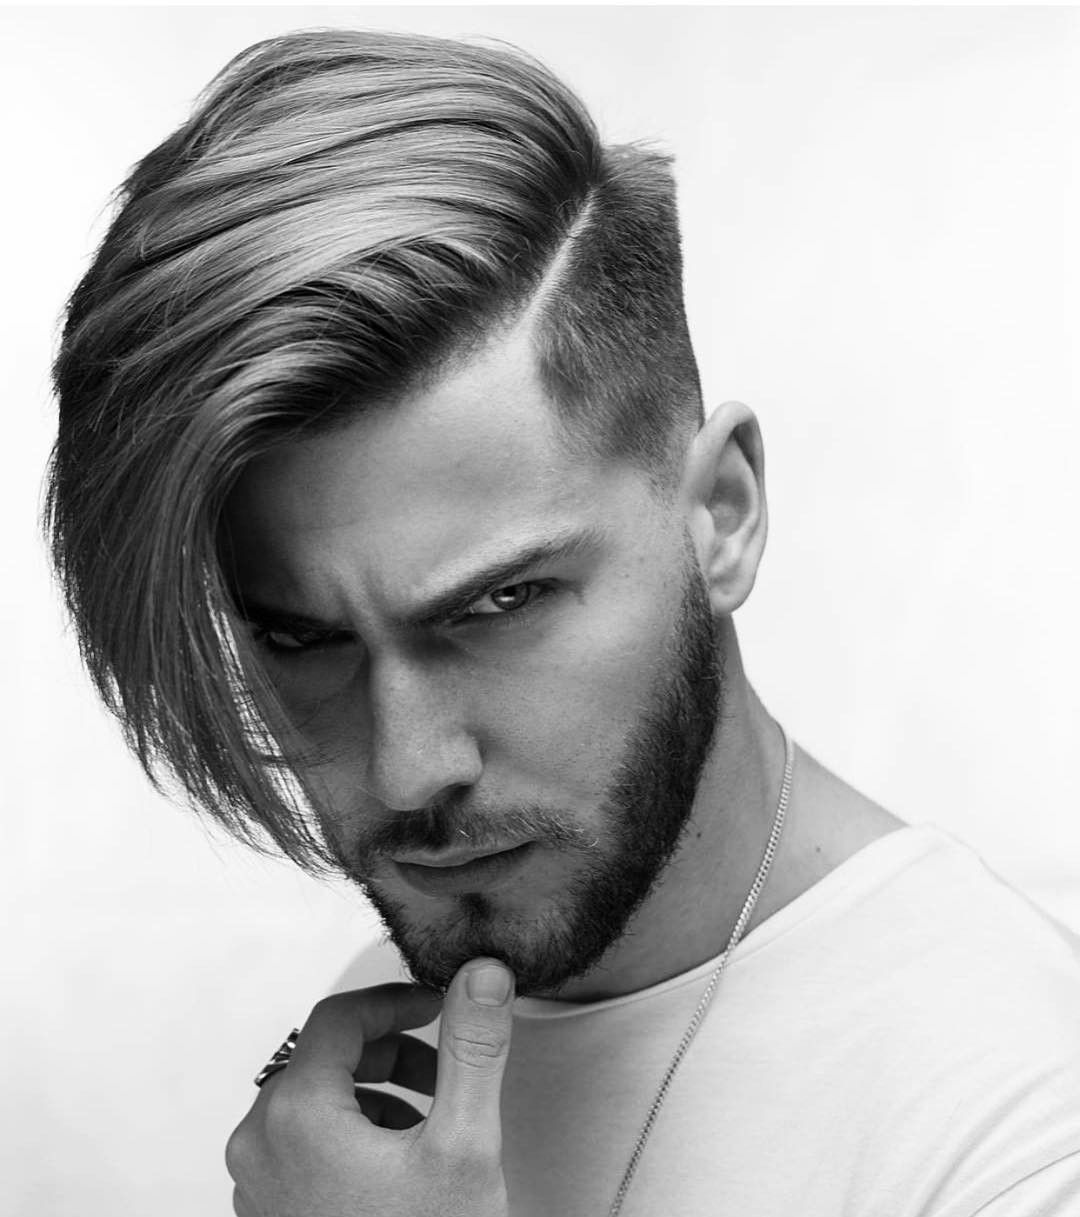 Teenager Haarschnitt Pin By Paul Wierenga On Mens Hairstyles Pinterest Haarschnitt